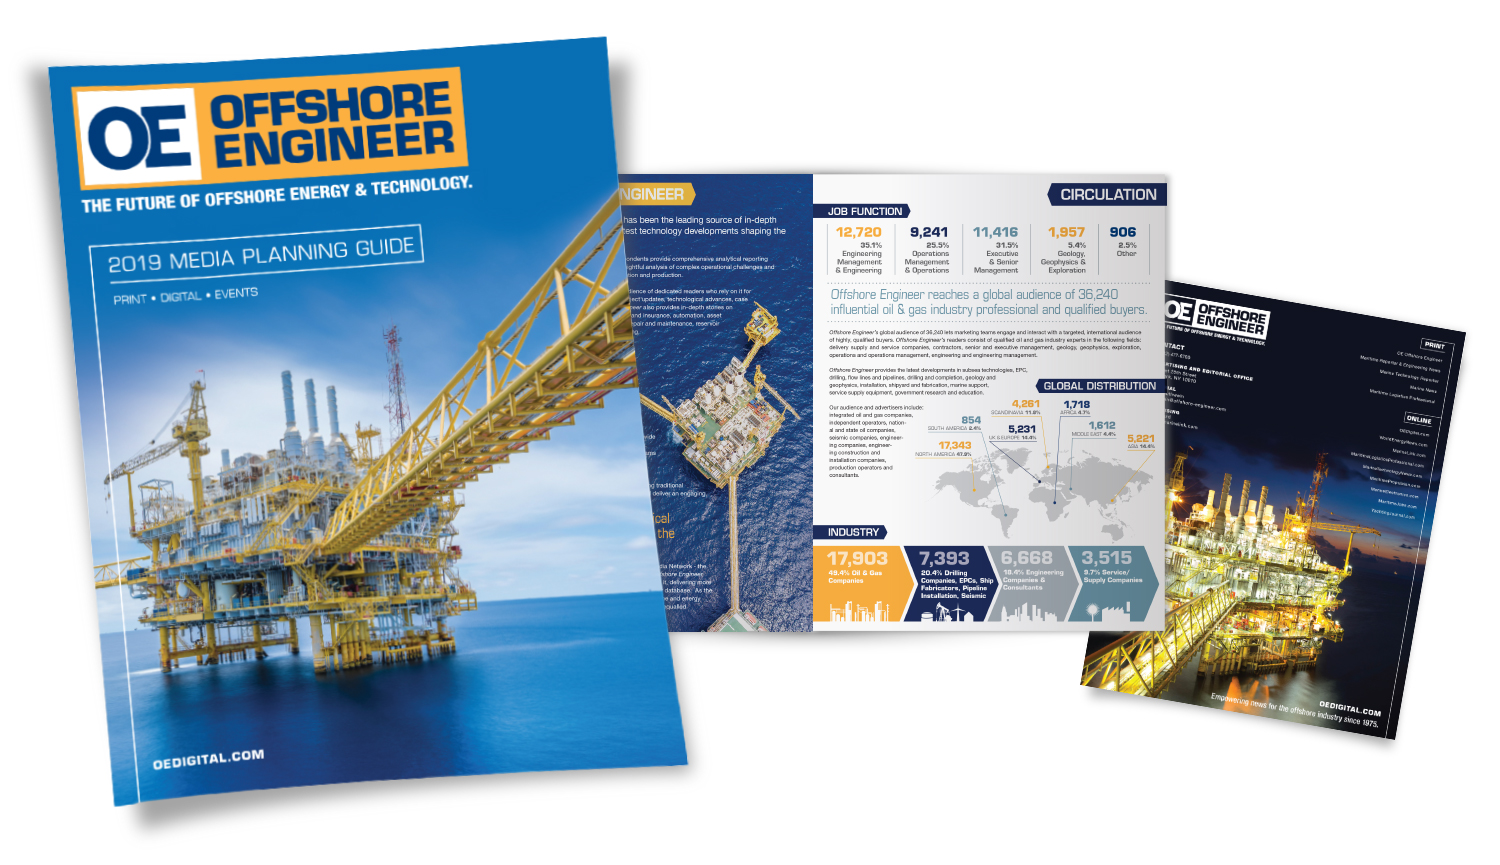 OffshoreEngineer_booklet-and-cover_mockup.jpg